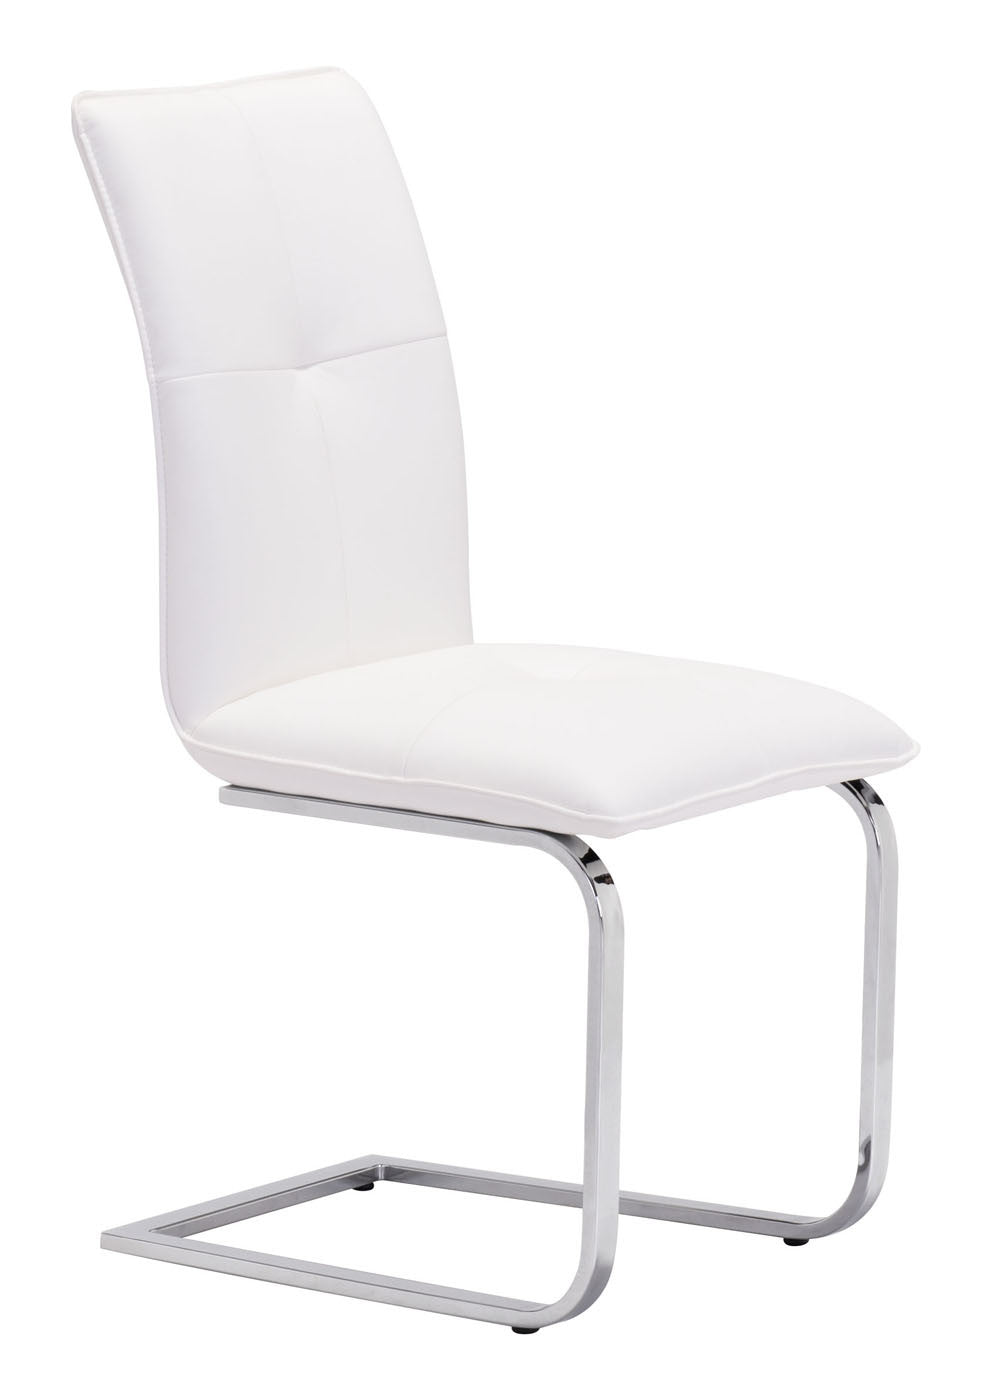 Anjou Dining Chair White (Set of 2)